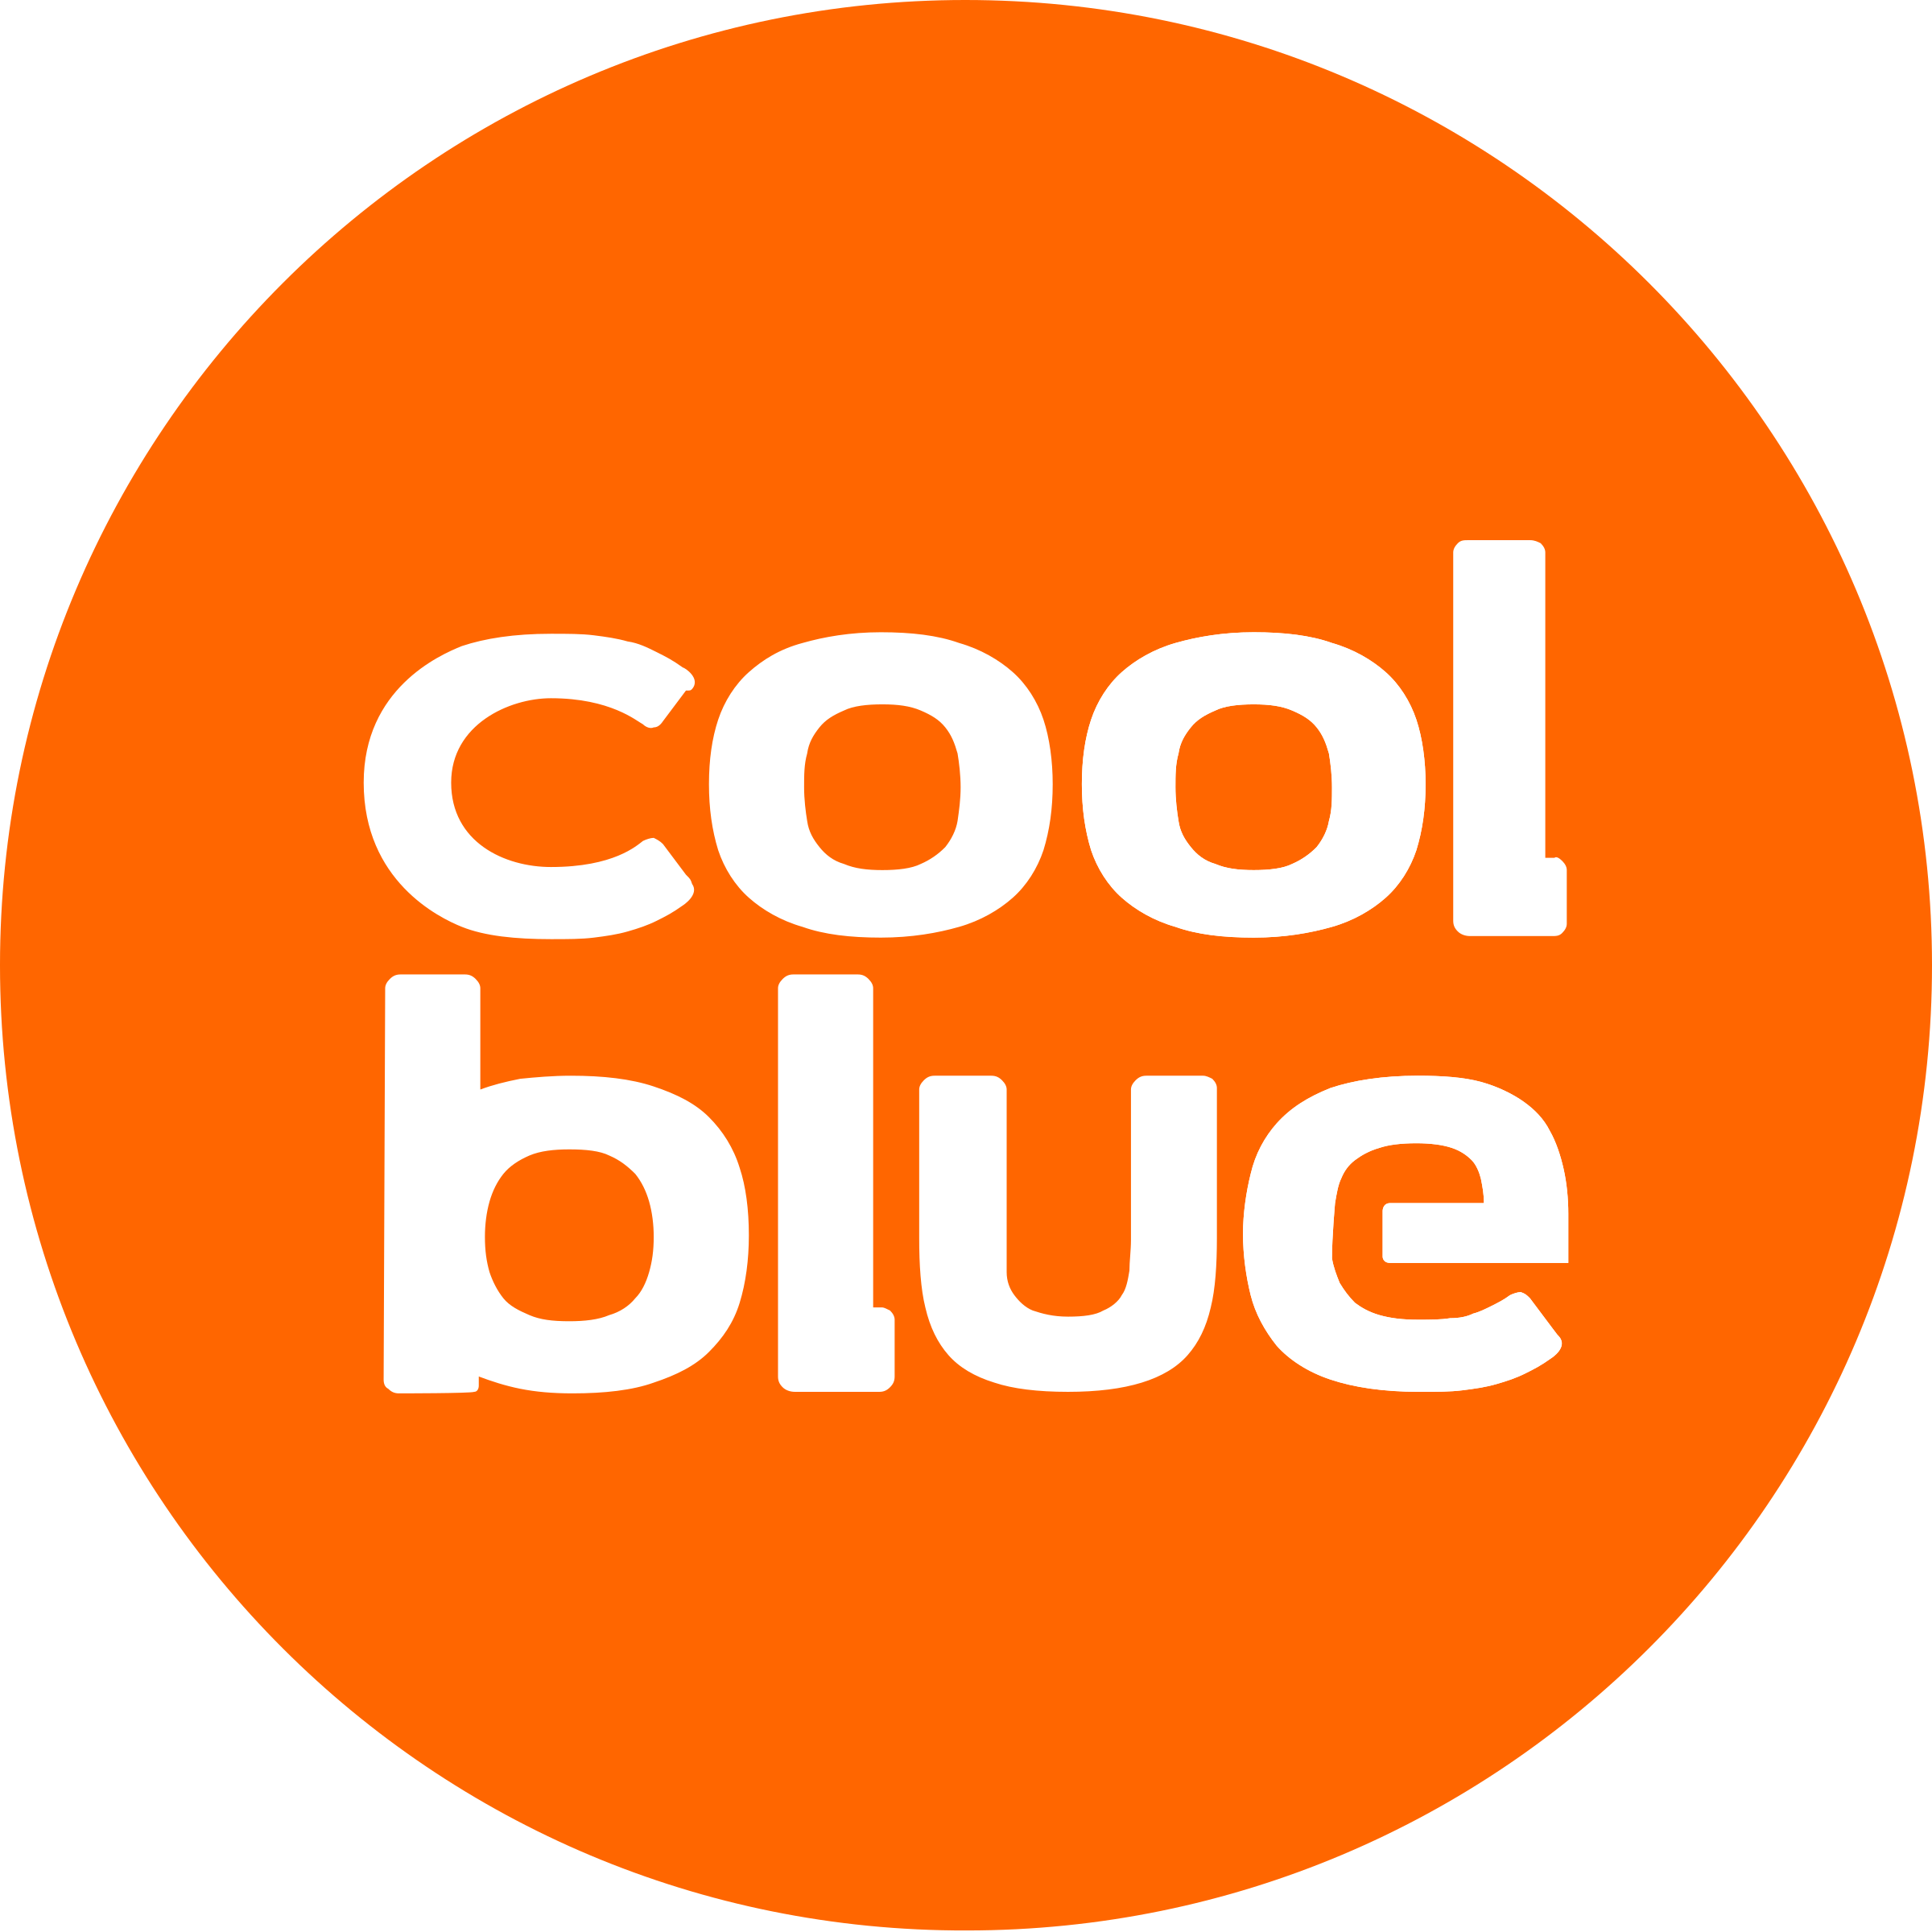 coolblue-logo-png-transparent